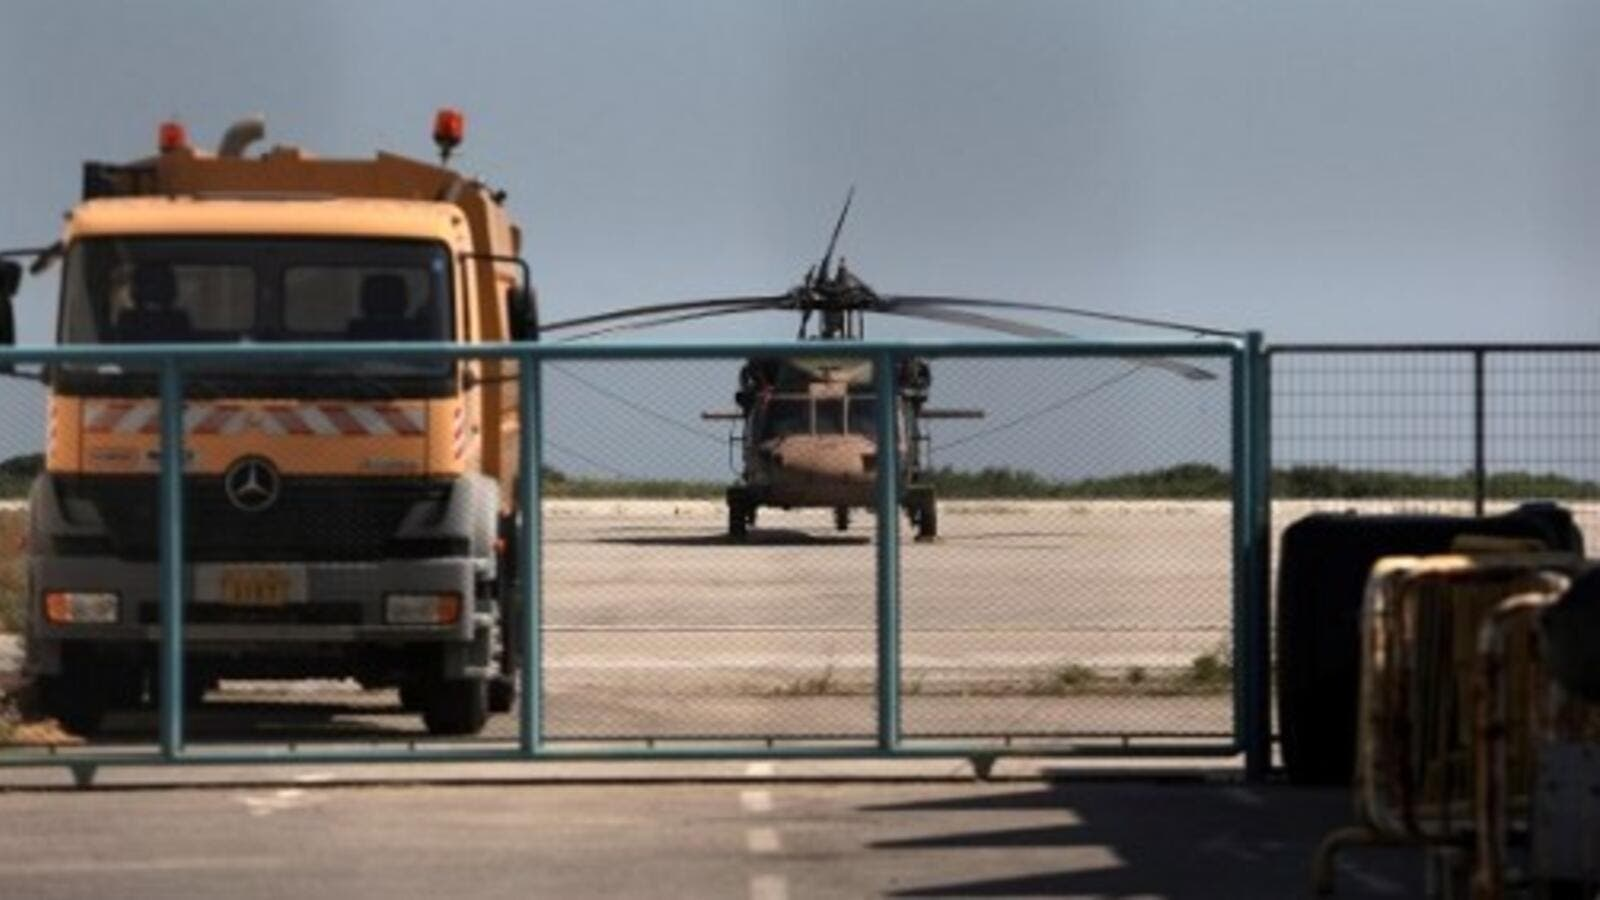 A photo taken on July 16, 2016 shows a Turkish military helicopter at Alexandroupolis airport, after landing there carrying eight officers seeking asylum after a failed coup in Turkey the night before. (AFP/Sakis Mitrolidis)